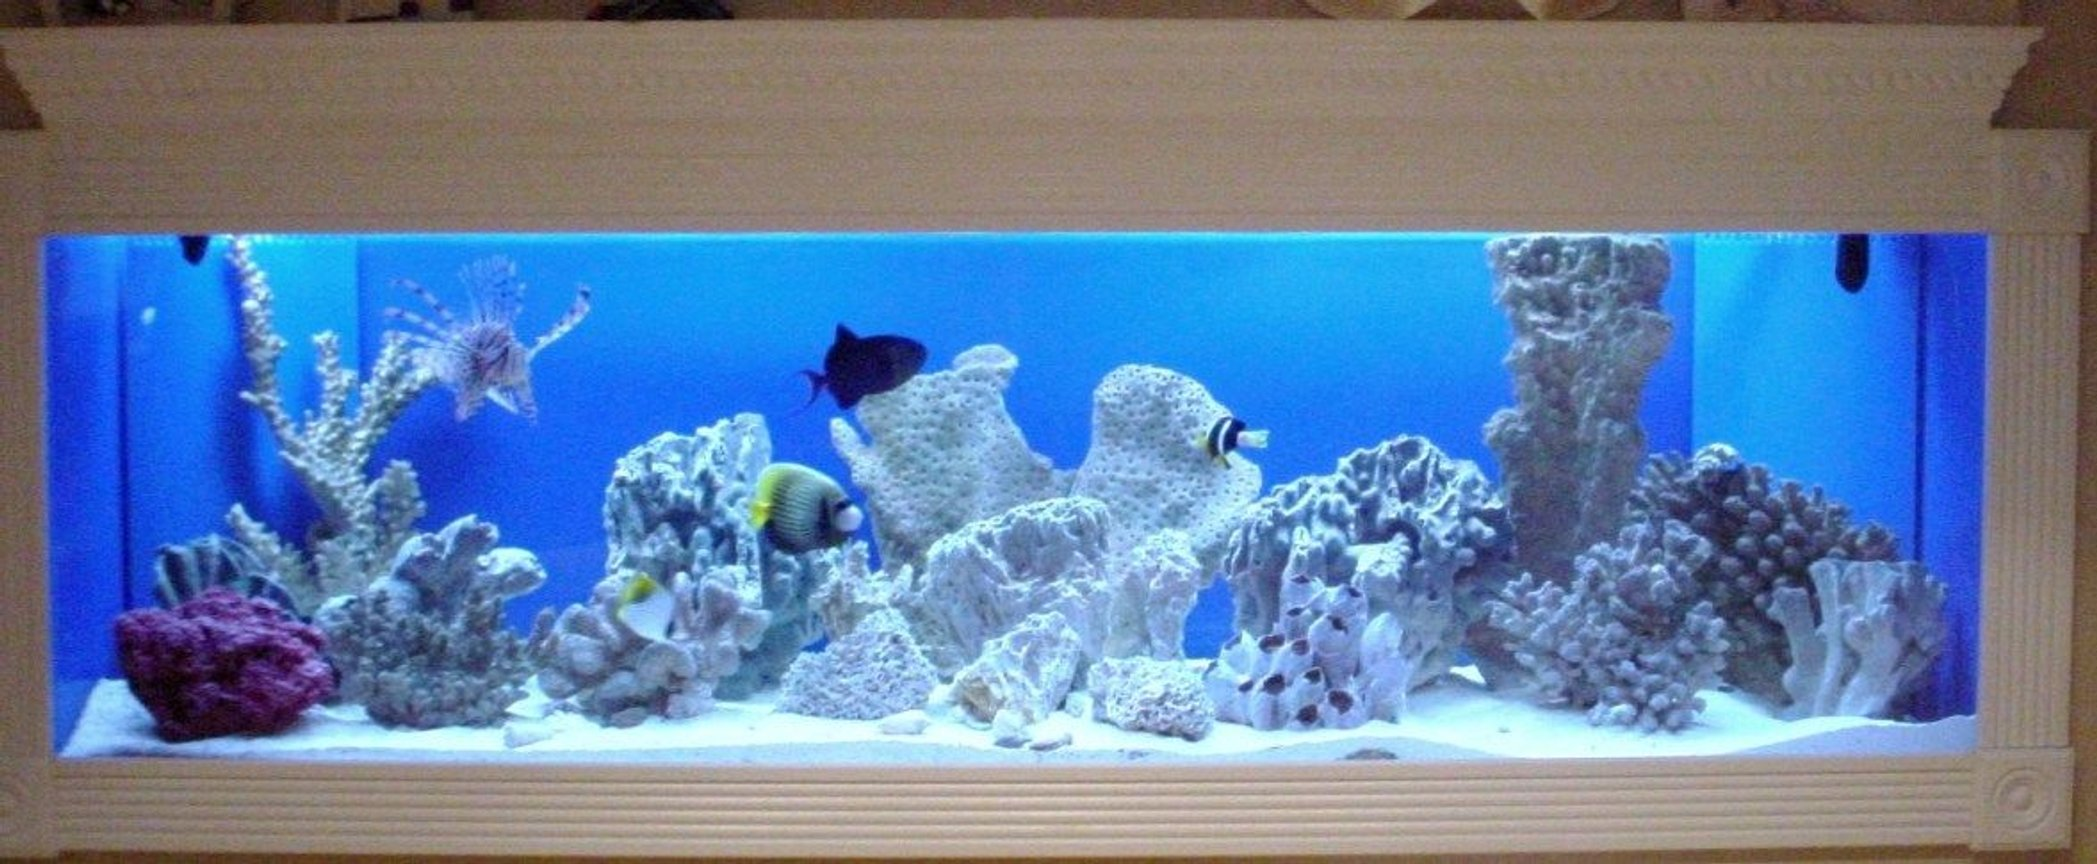 150 gallons saltwater fish tank (mostly fish, little/no live coral) - 150 Gallon FOWLR In Wall Saltwater Tank